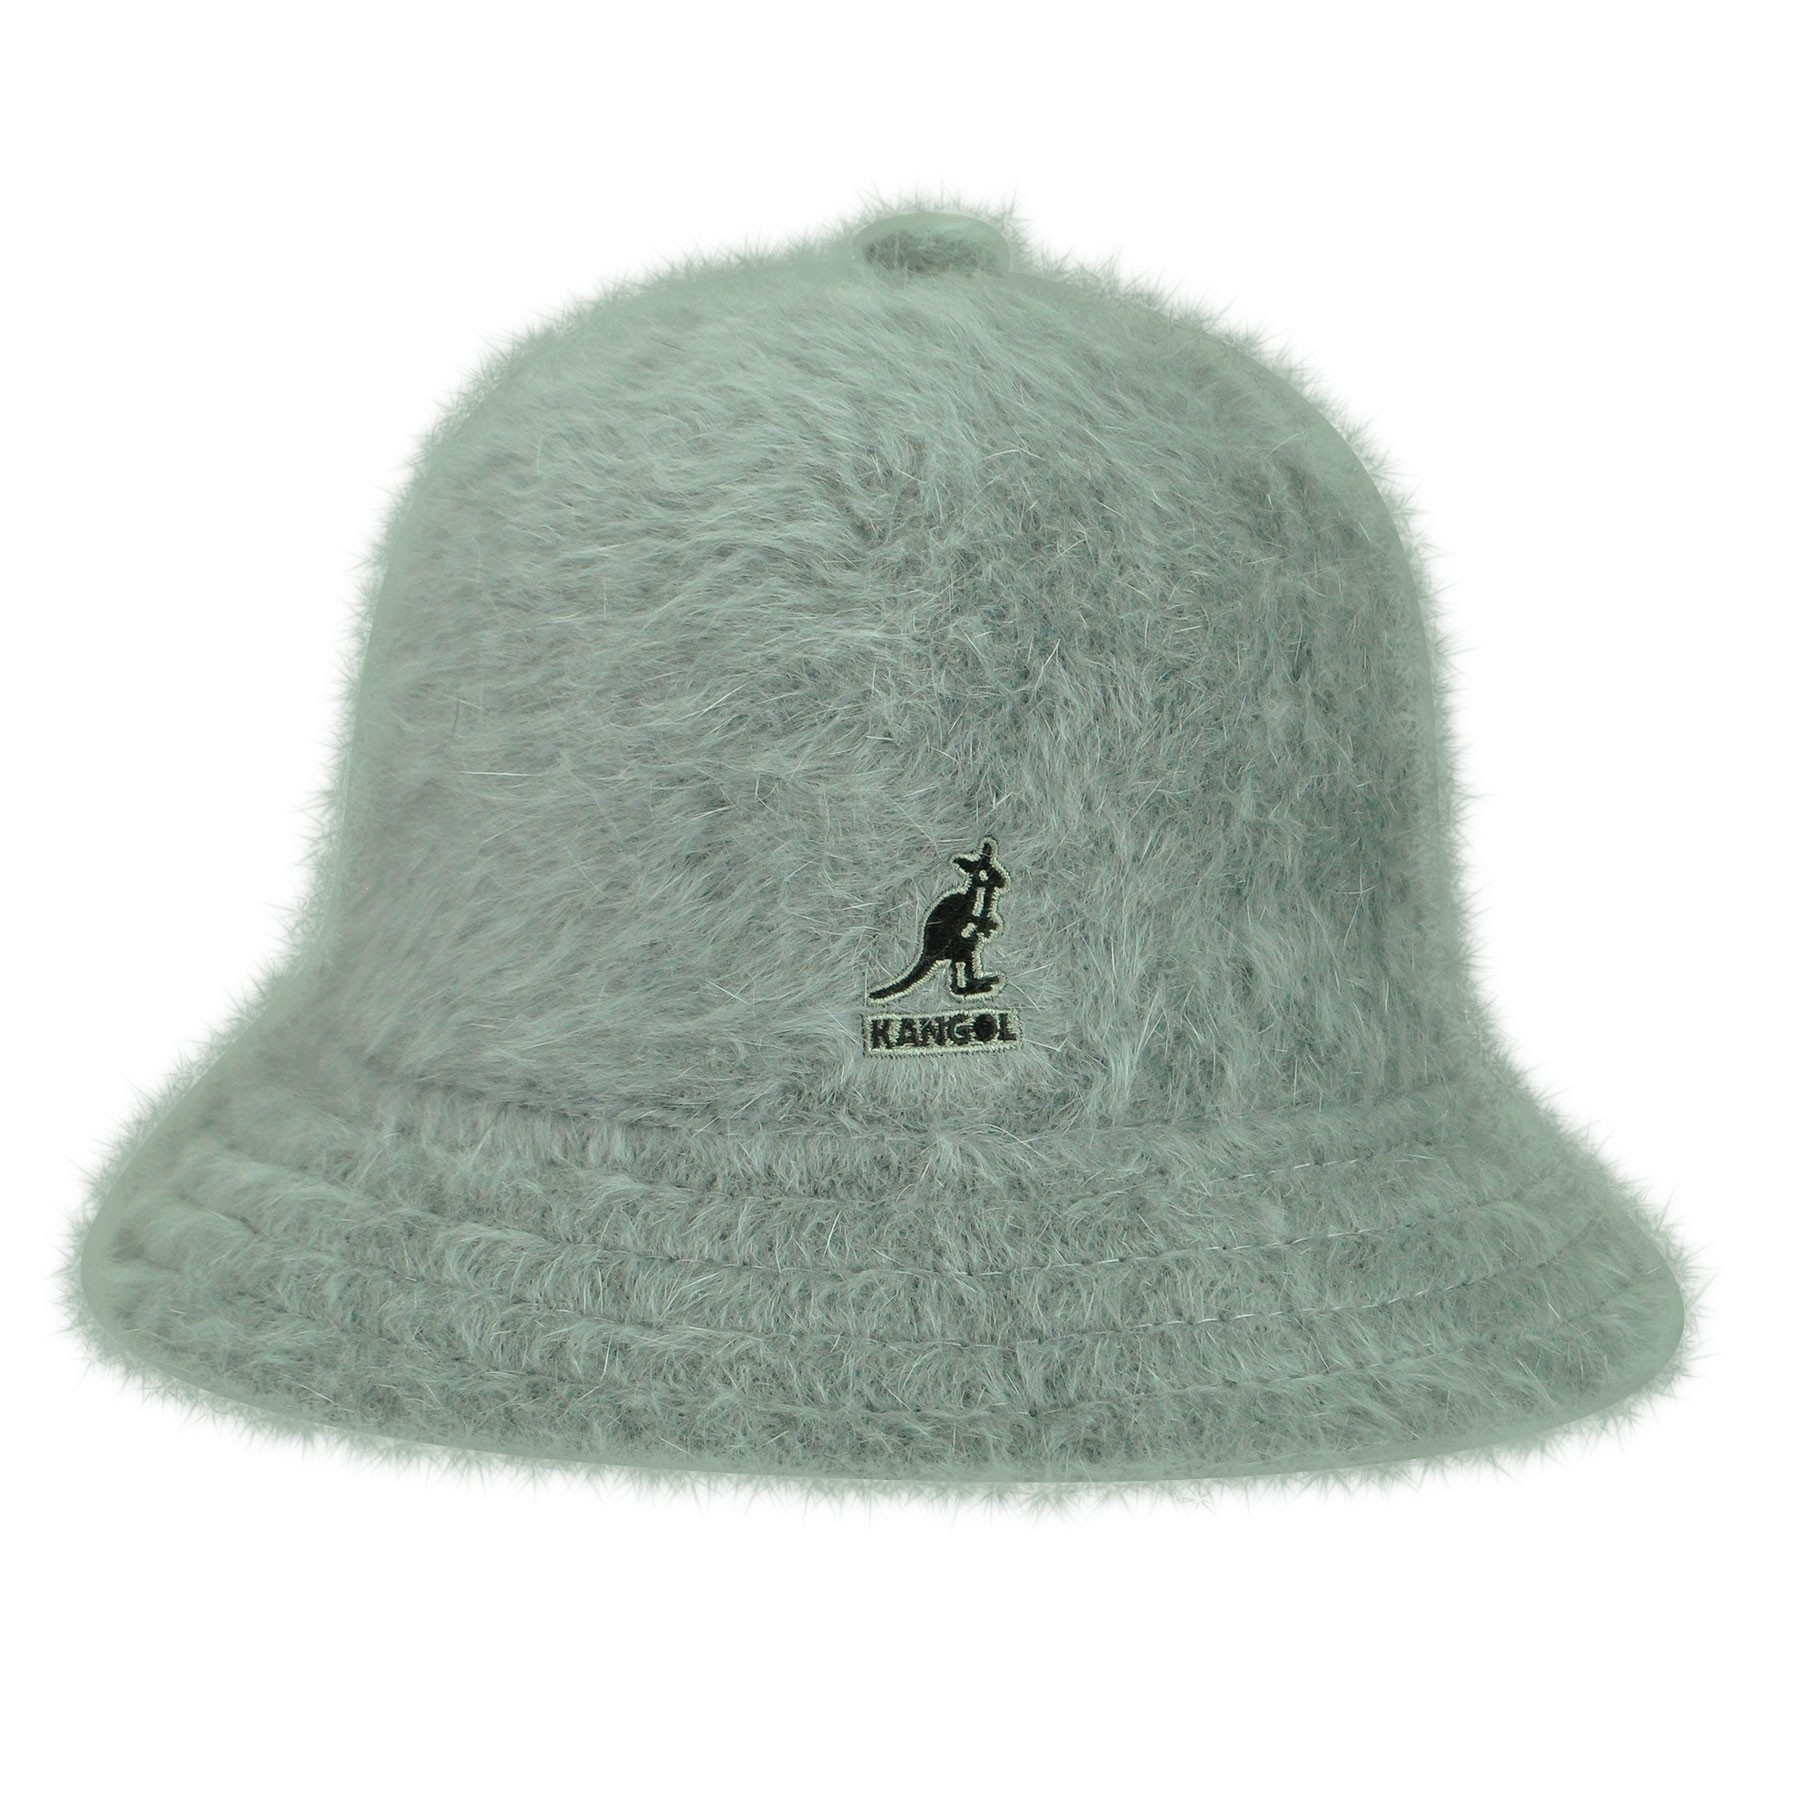 cd1692a3 Furgora Casual - The Official KANGOL Store